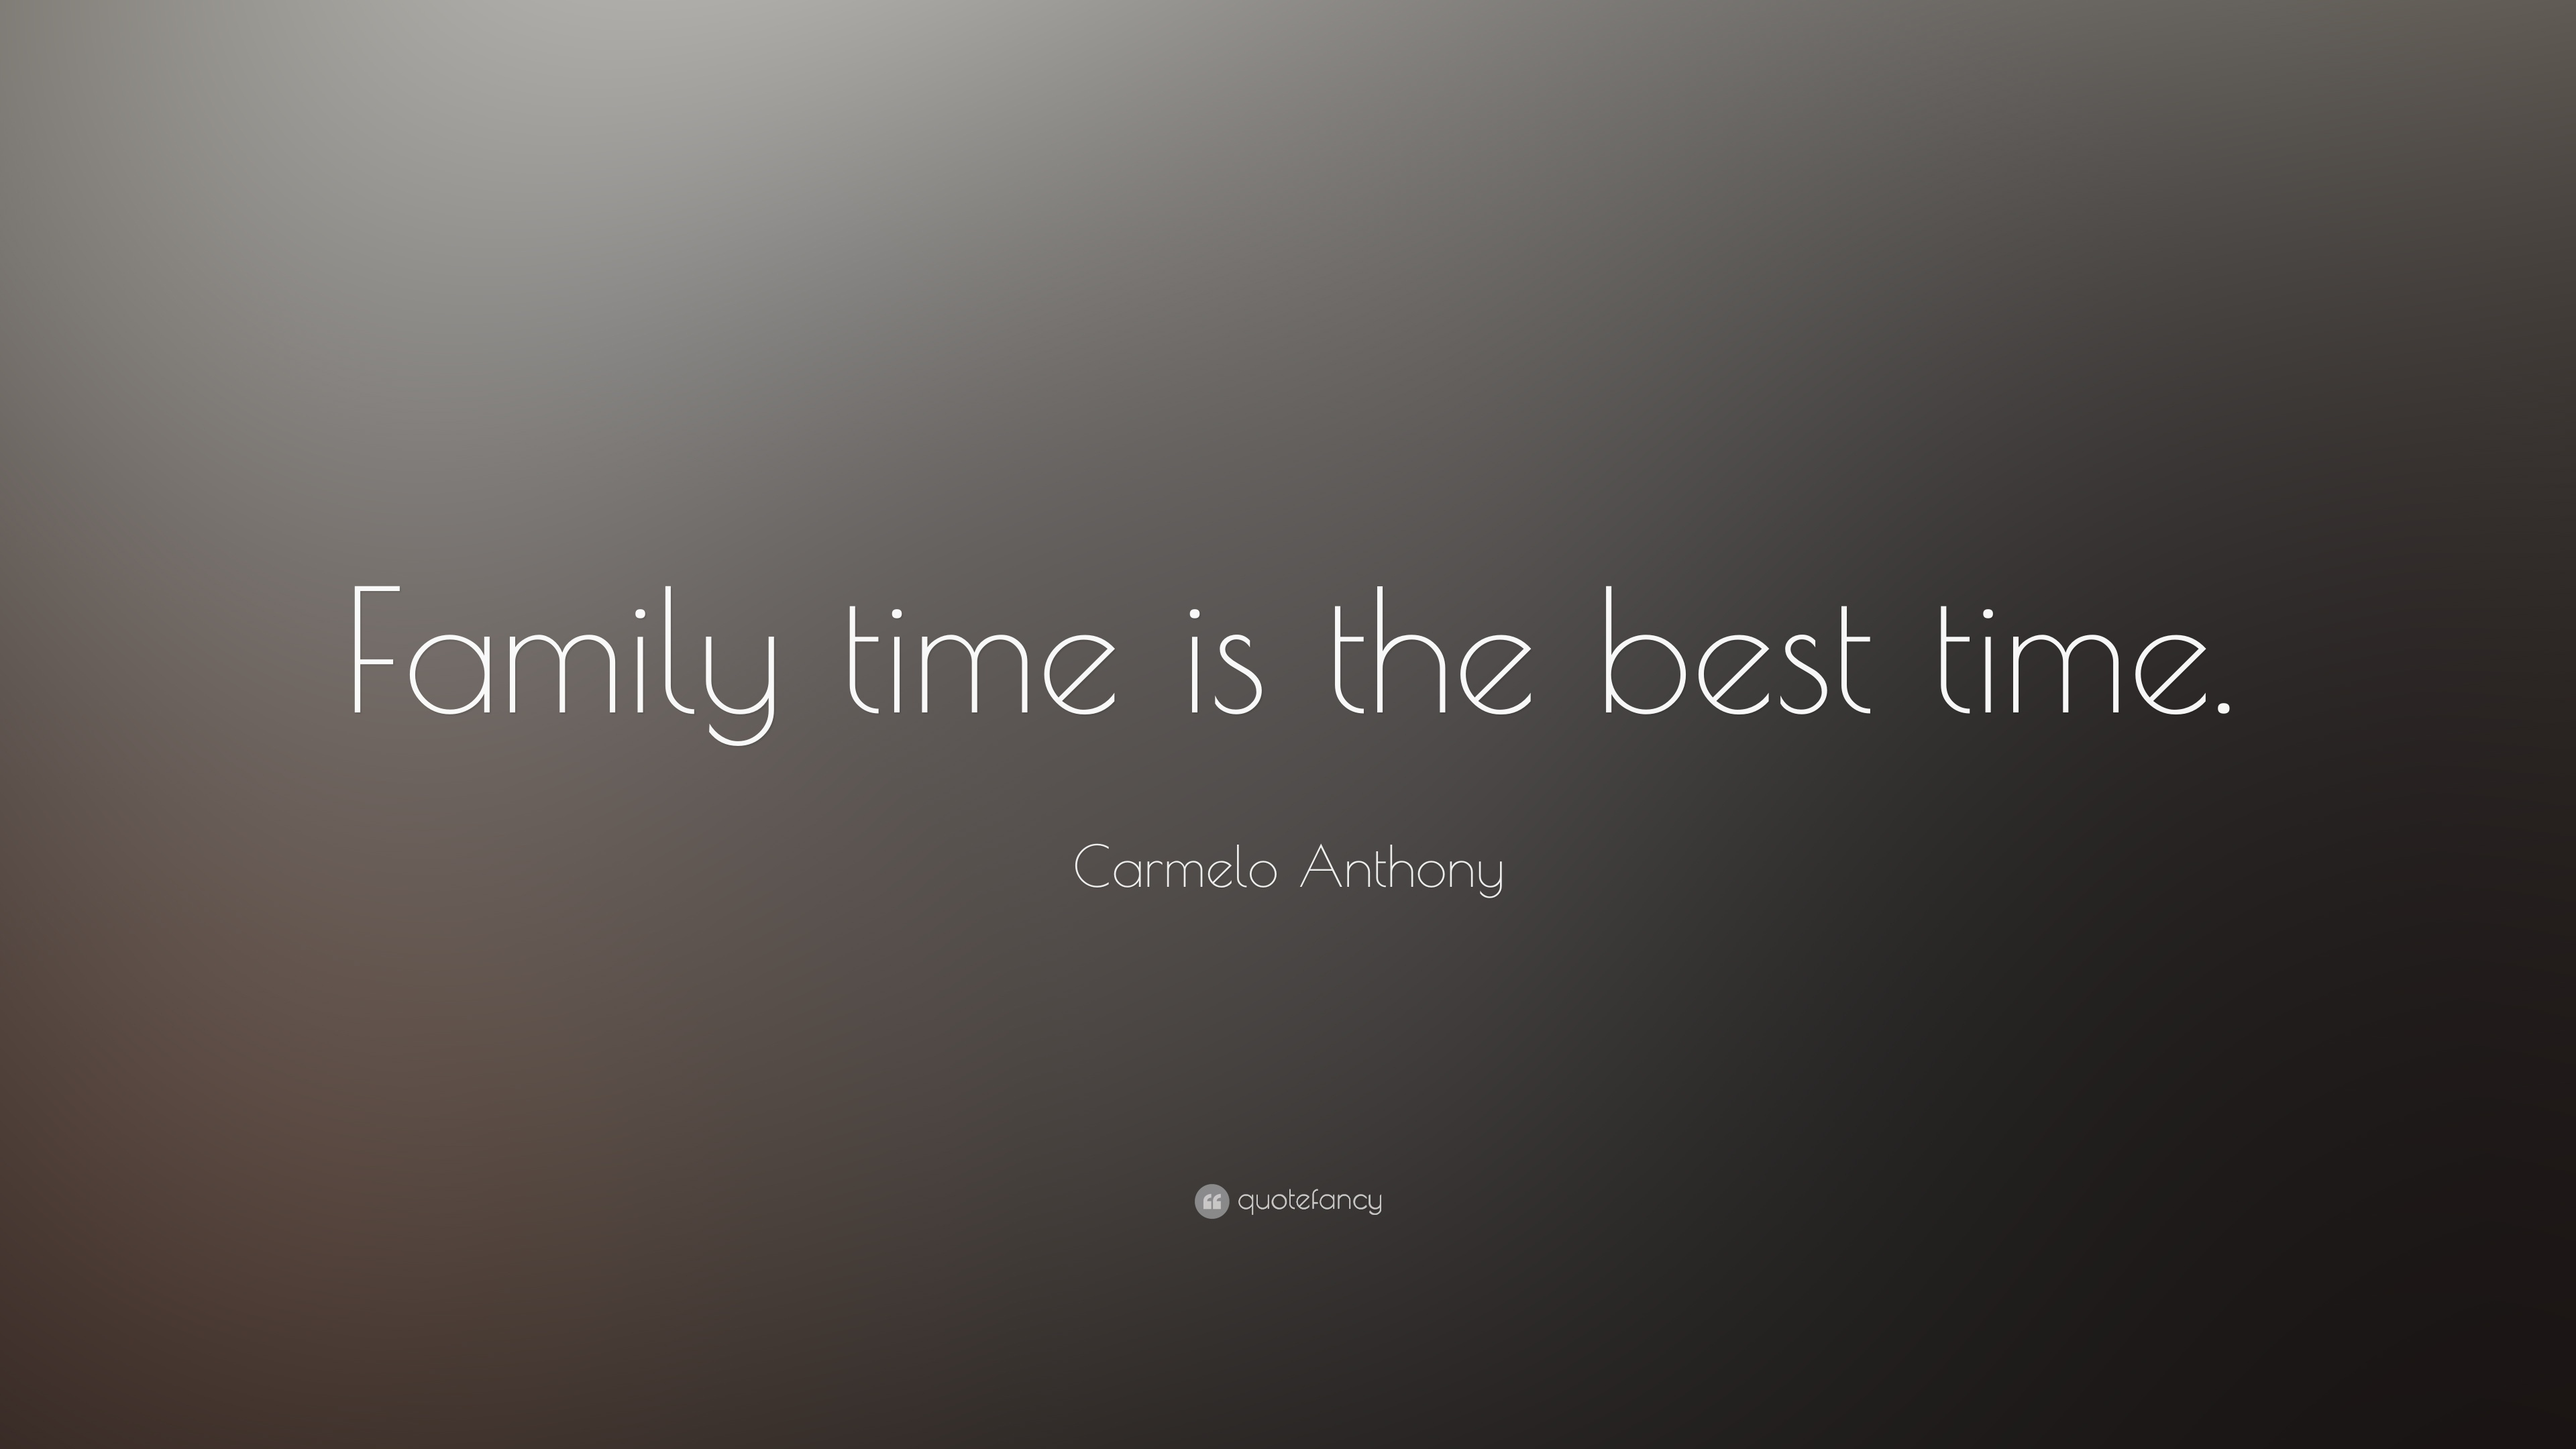 carmelo anthony quote family time is the best time